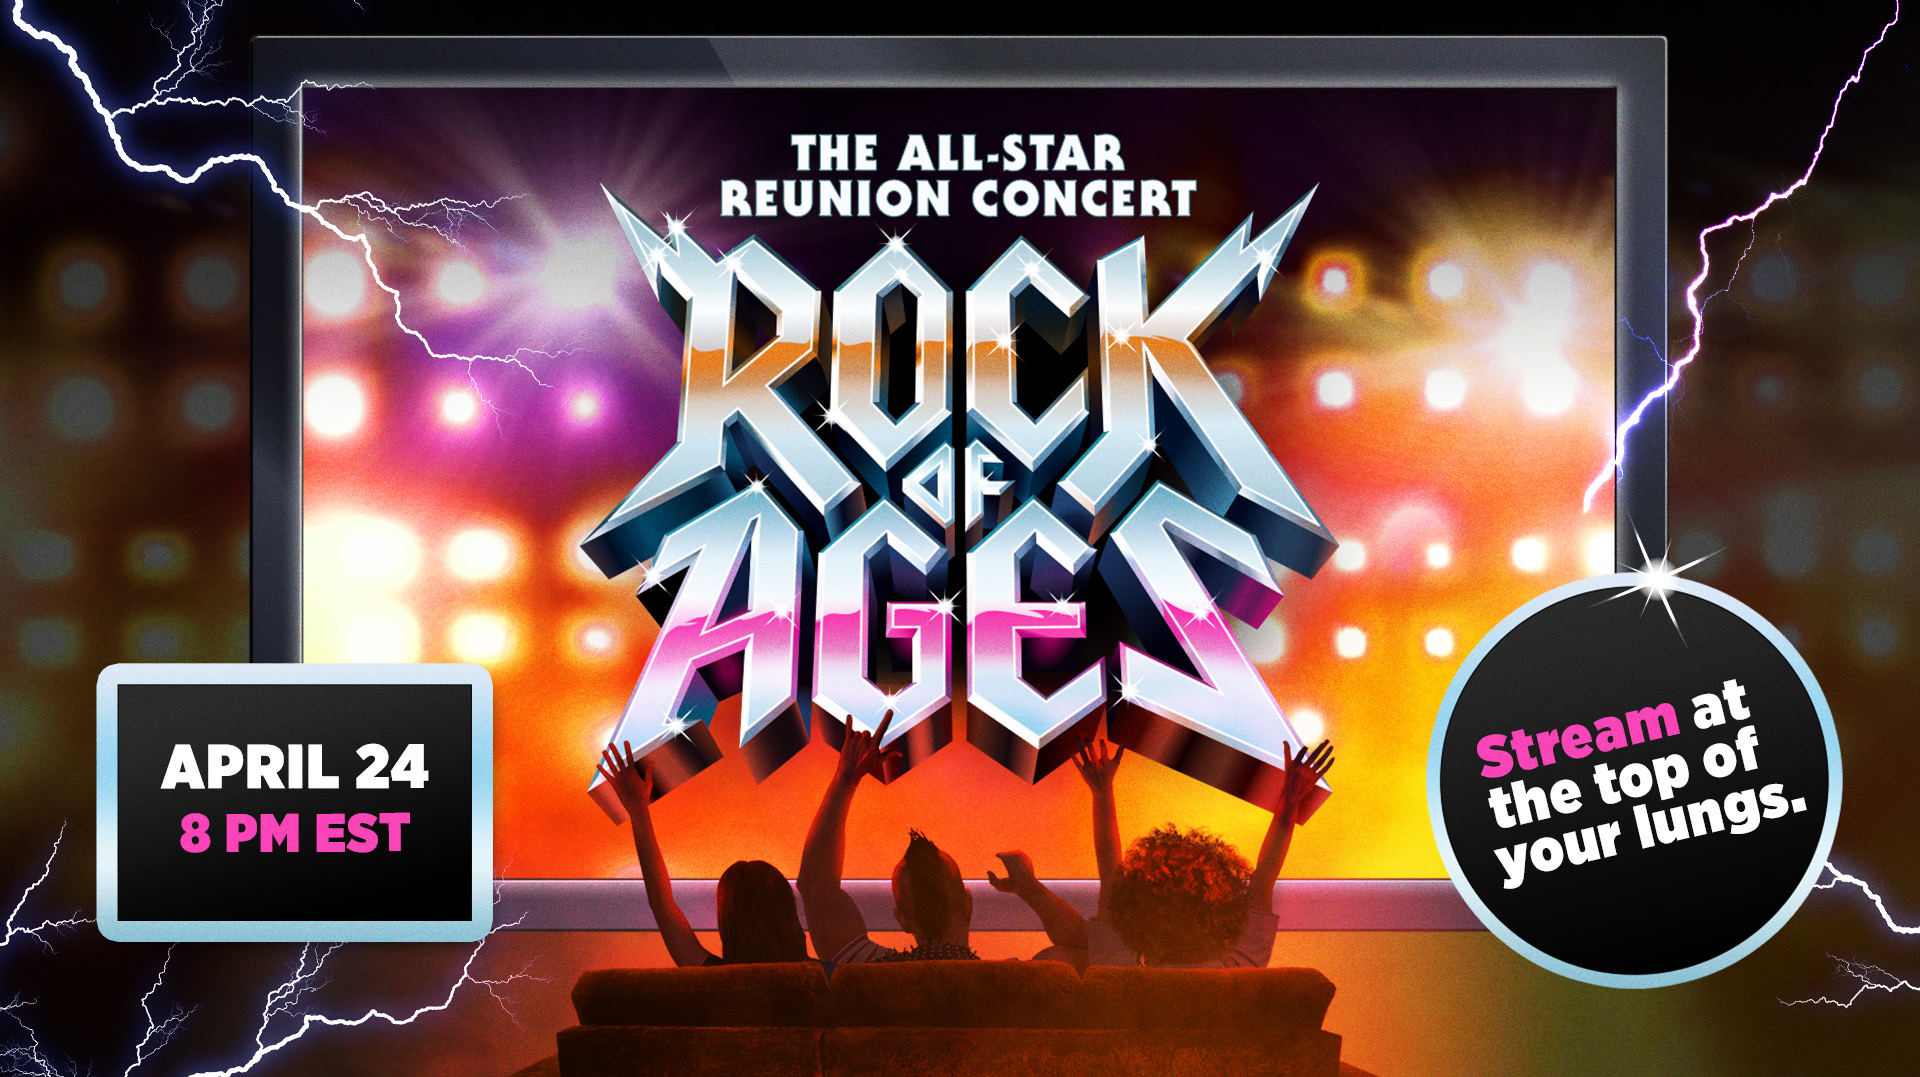 """""""Rock of Ages Live"""": All-Star Reunion Concert - Online"""